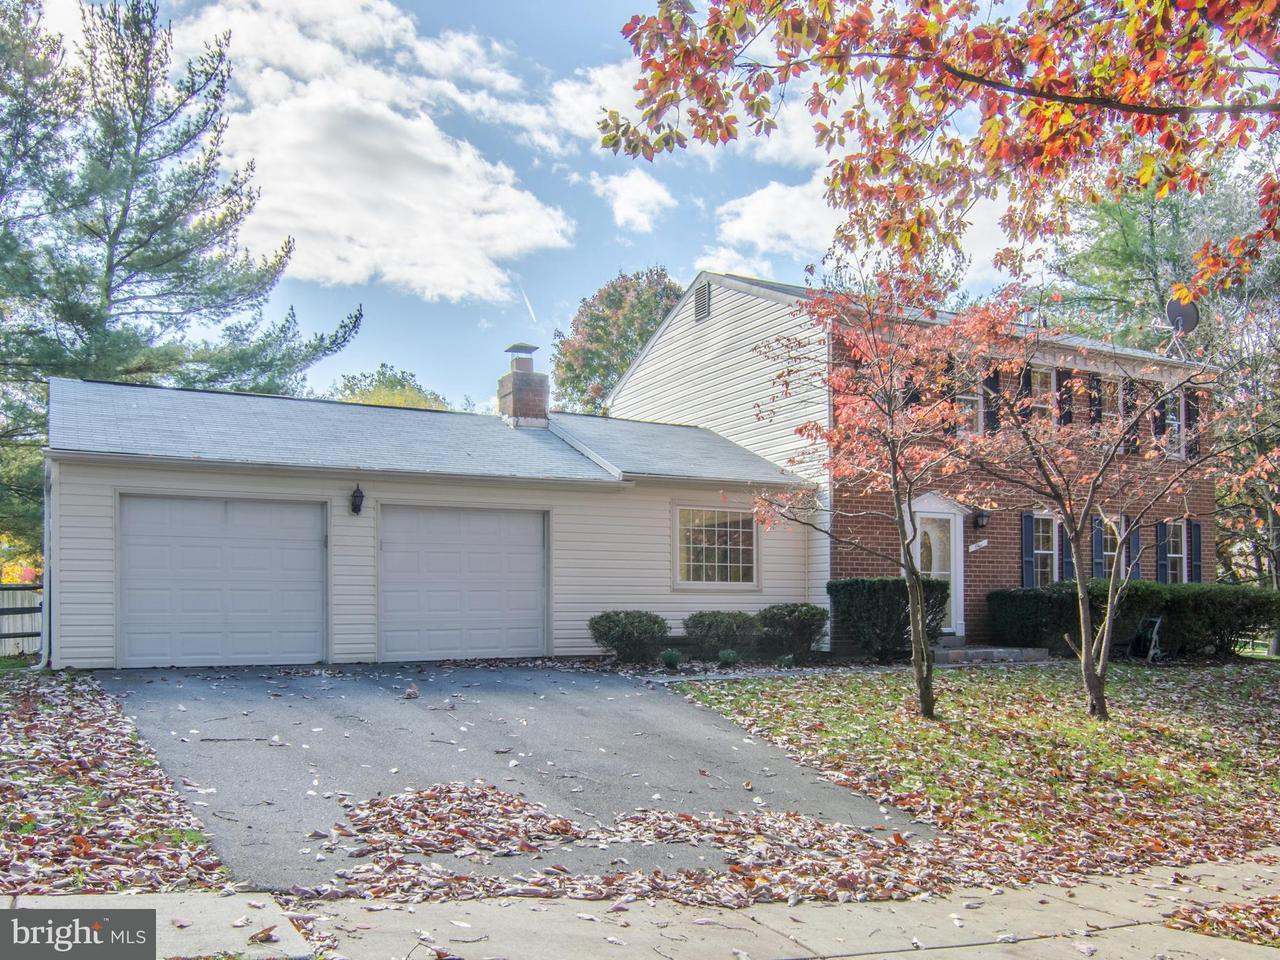 Single Family Home for Sale at 1 GROVEPOINT Court 1 GROVEPOINT Court Potomac, Maryland 20854 United States